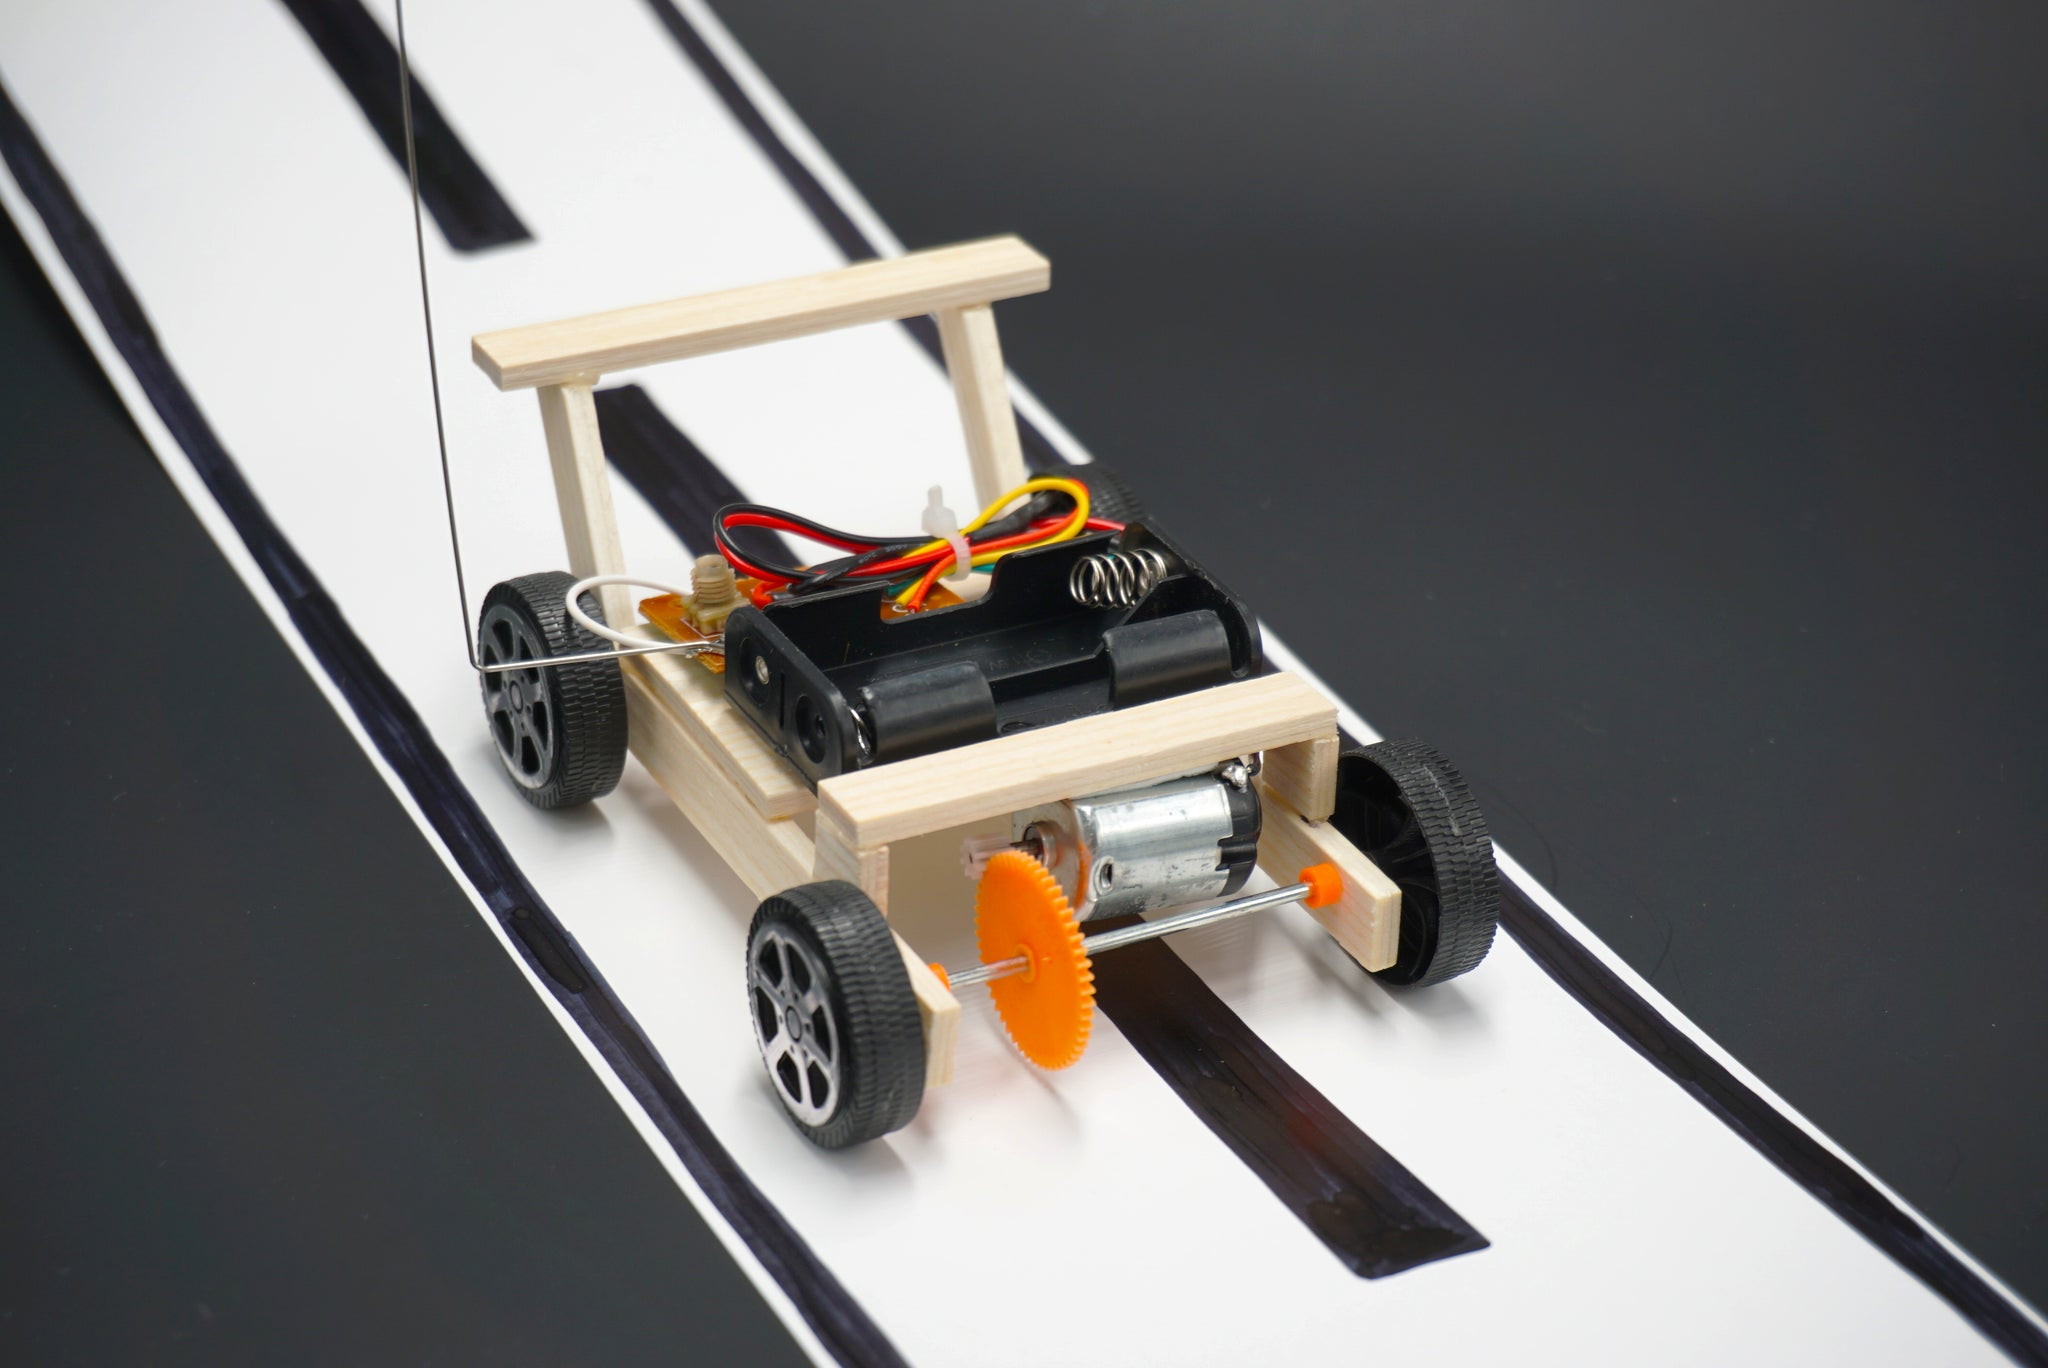 Remote controlled circuit board car do it yourself remote controlled circuit board car diy stem stream steam kit solutioingenieria Images